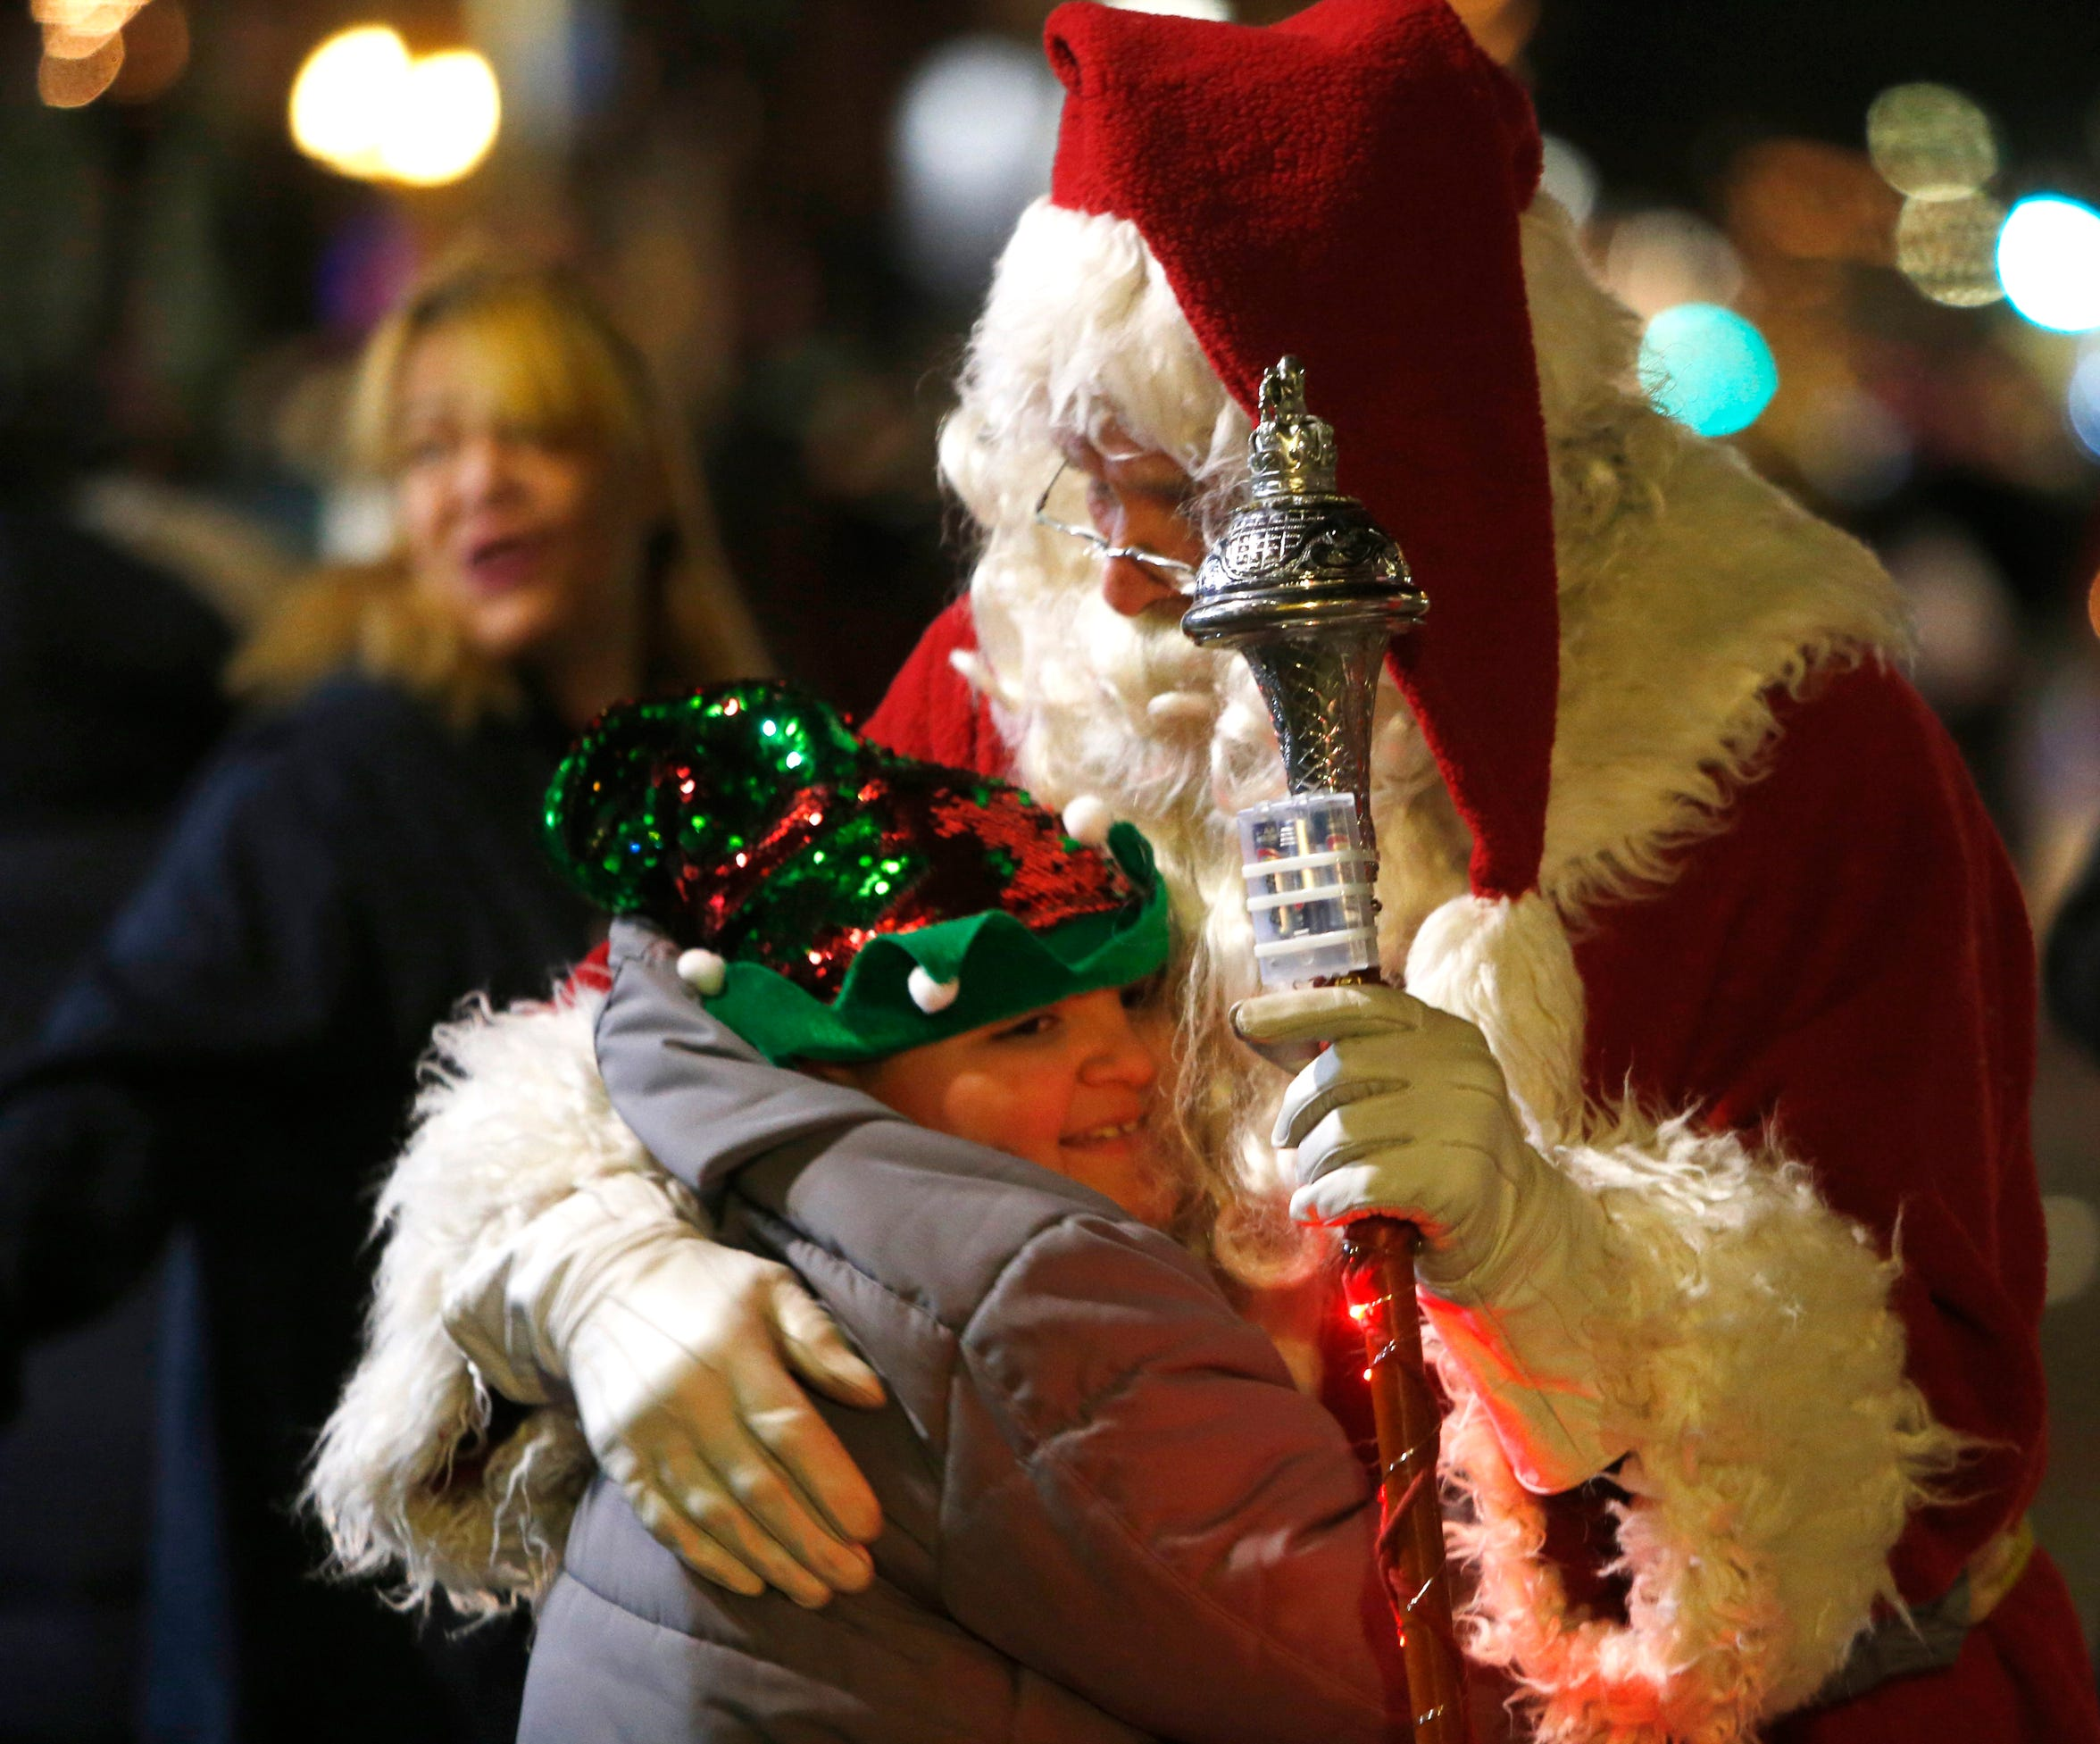 Willie Melton III gives a hug to Santa Claus, Bill Tomkins of the Amerscot Highland Pipe Band during the Celebration of Lights Parade in the City of Poughkeepsie on November 30, 2018.